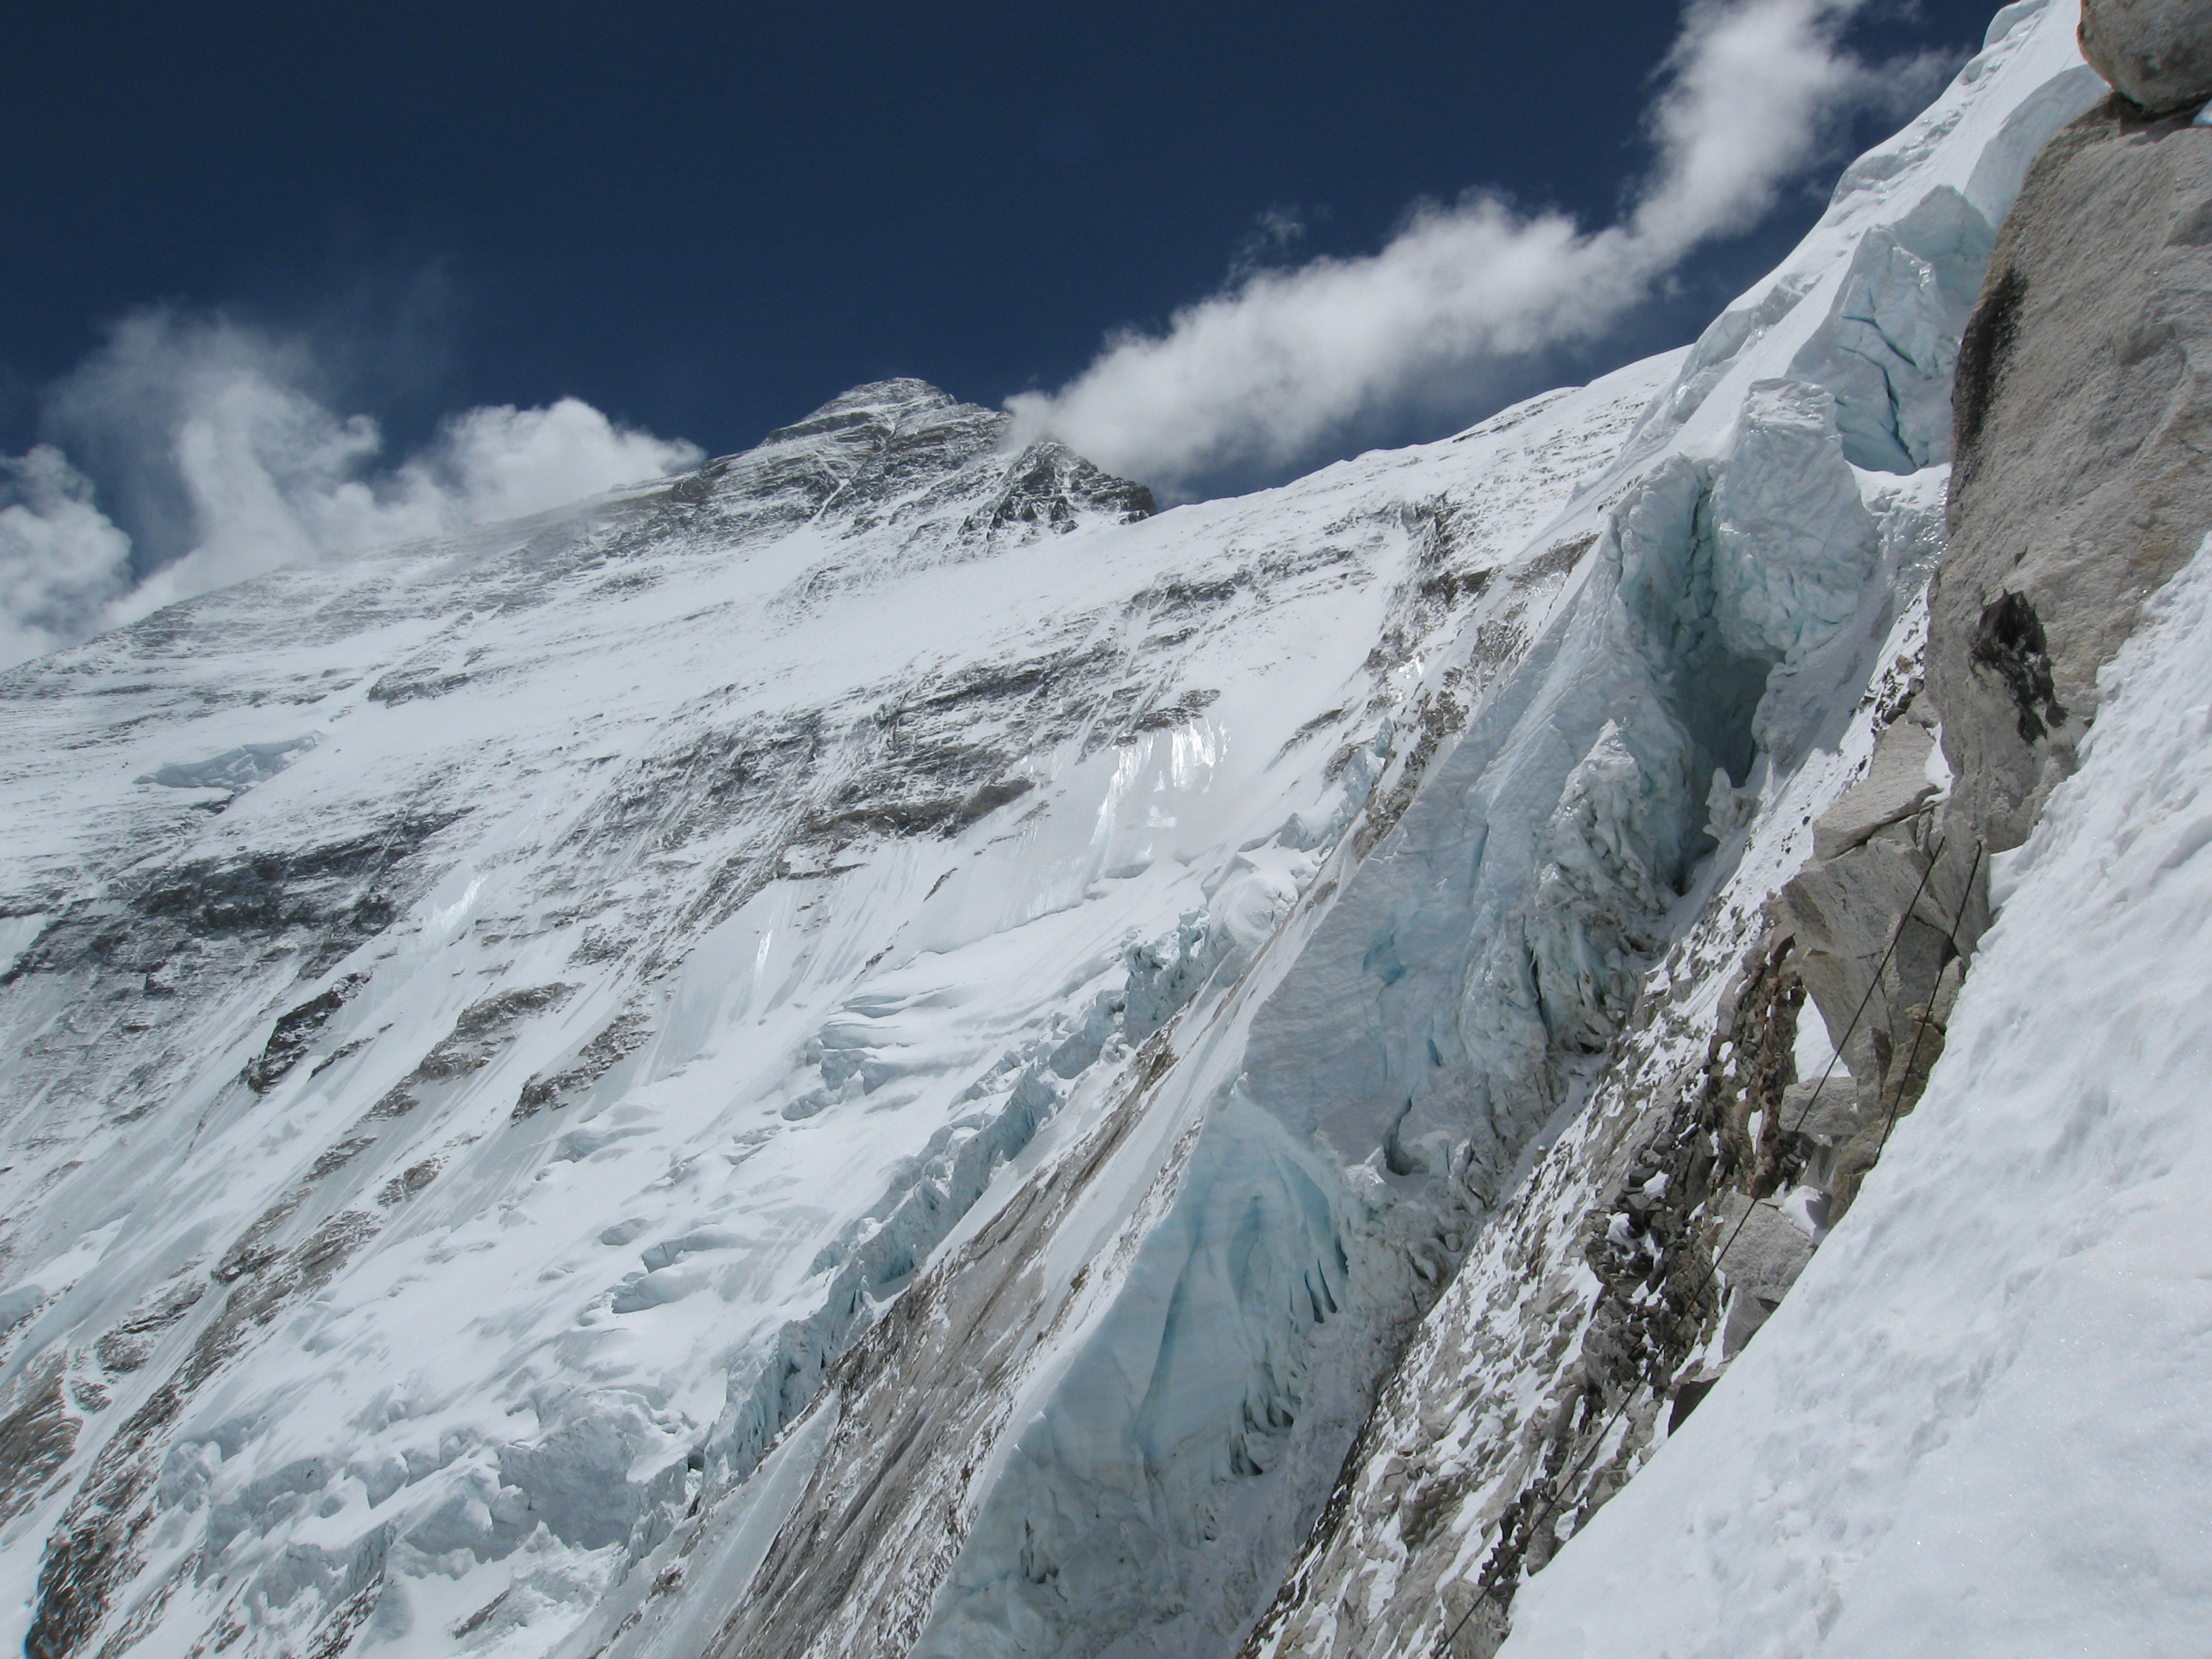 Everest North Face from French Spur